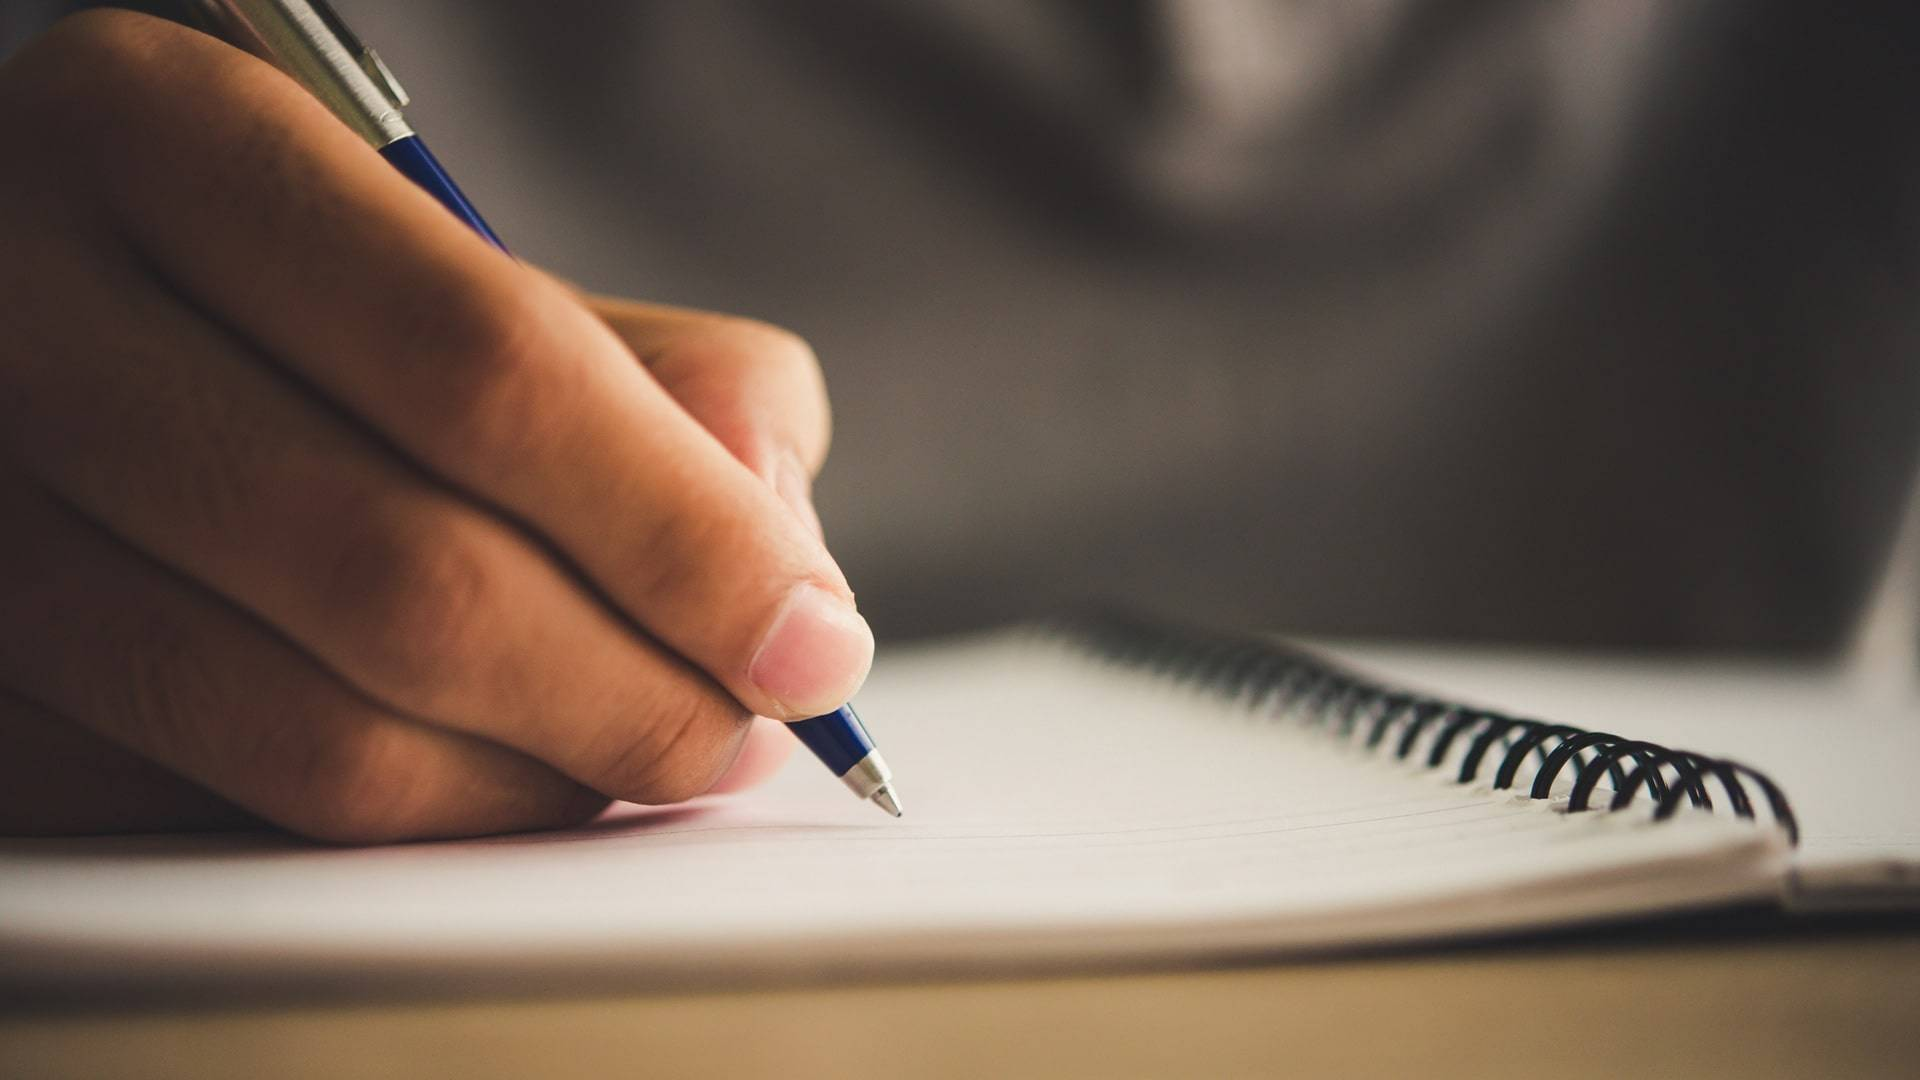 Teach teens that writing skills pay off in the real world